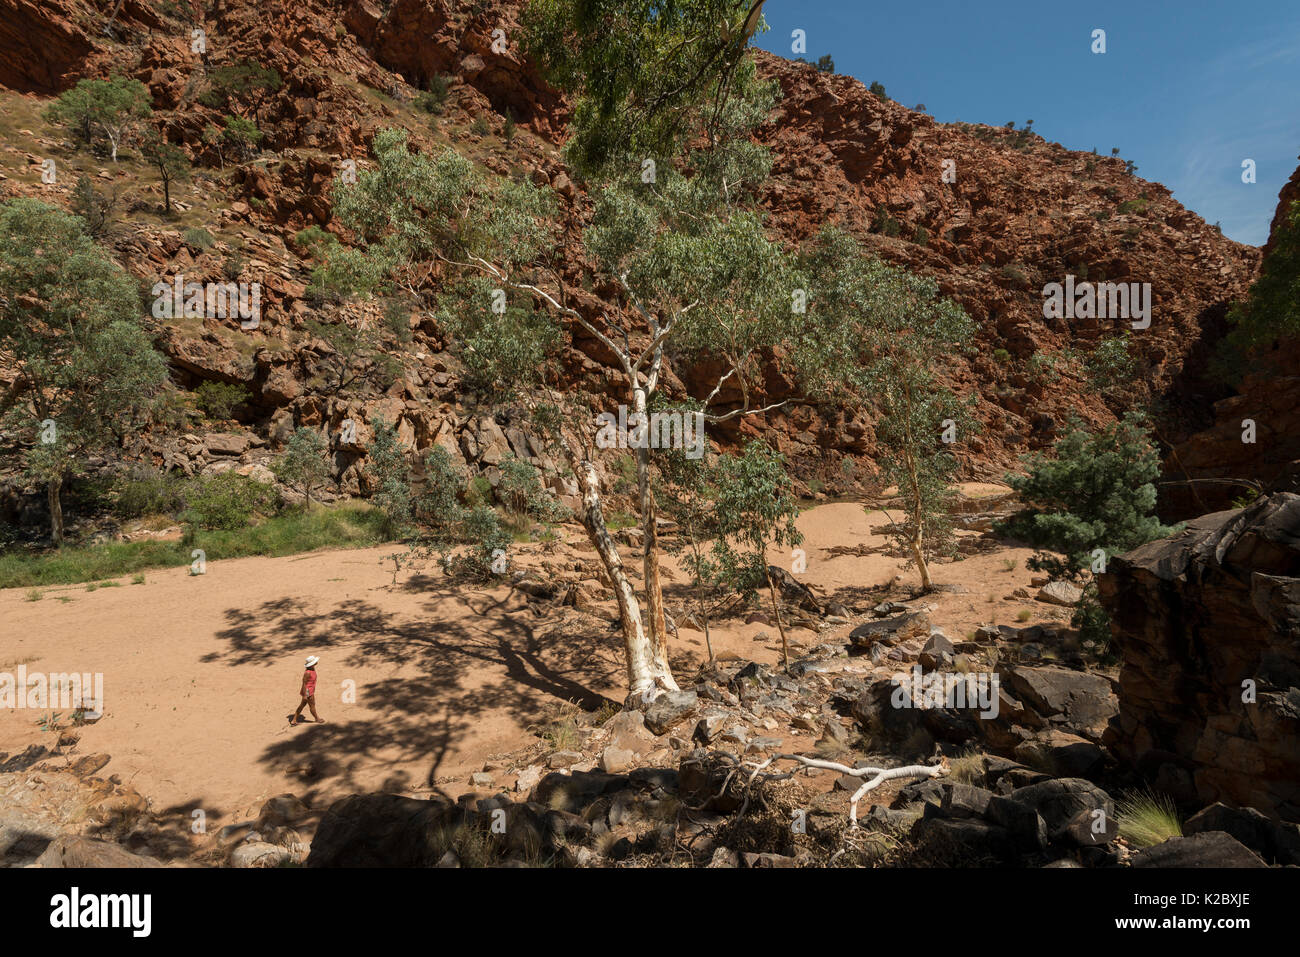 River red gum tree (Eucalyptus camaldulensis)  Redbank Gorge, West MacDonnell Ranges, Alice Springs, Northern Territory, Australia. - Stock Image